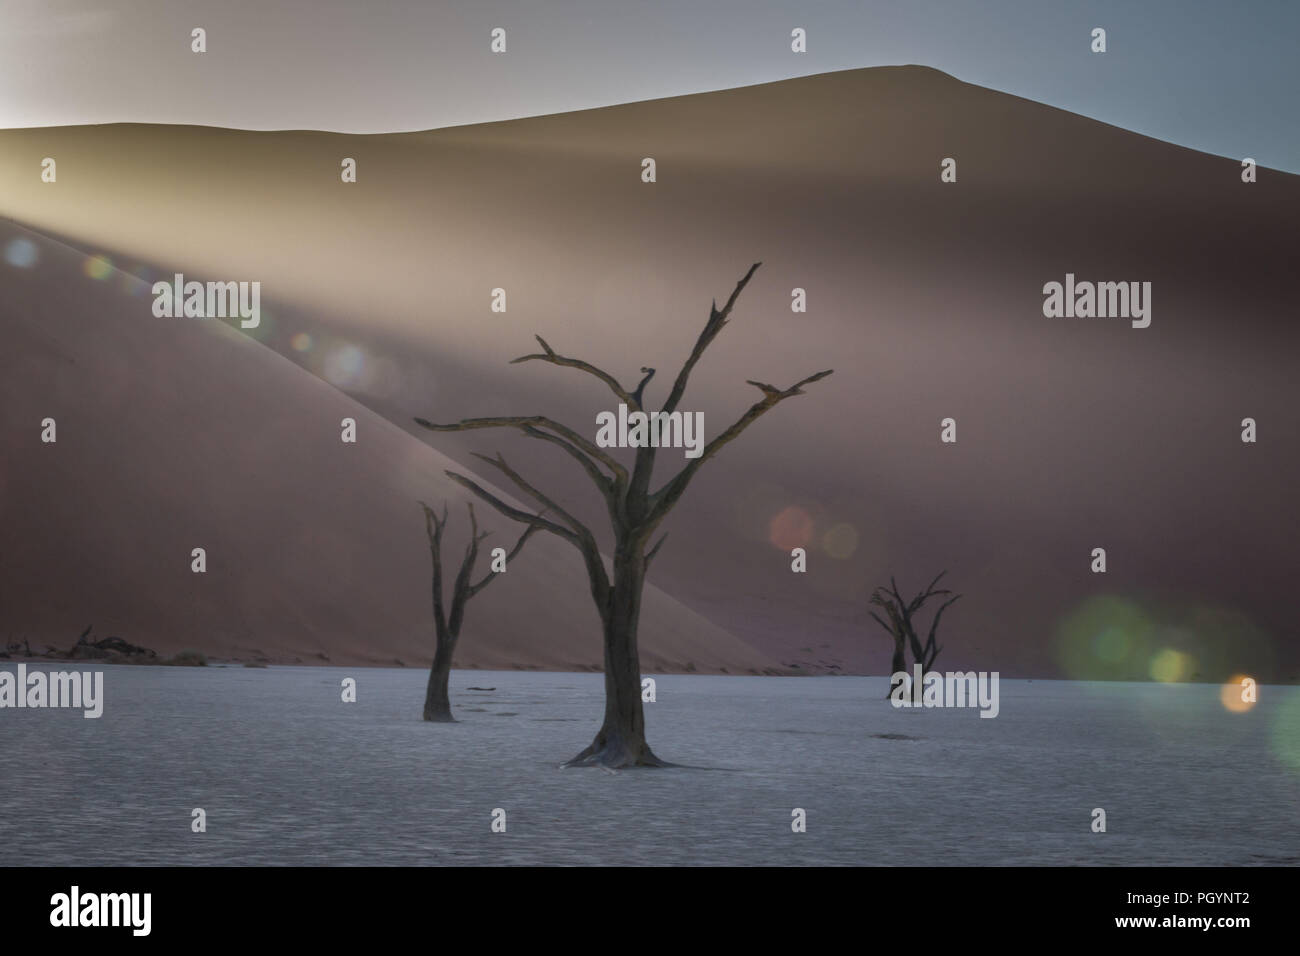 Dead trees stand guard over Deadvlei in Namib-Naukluft National Park, Namibia; the pan once had water from the Tsauchab river, but a changing environm - Stock Image